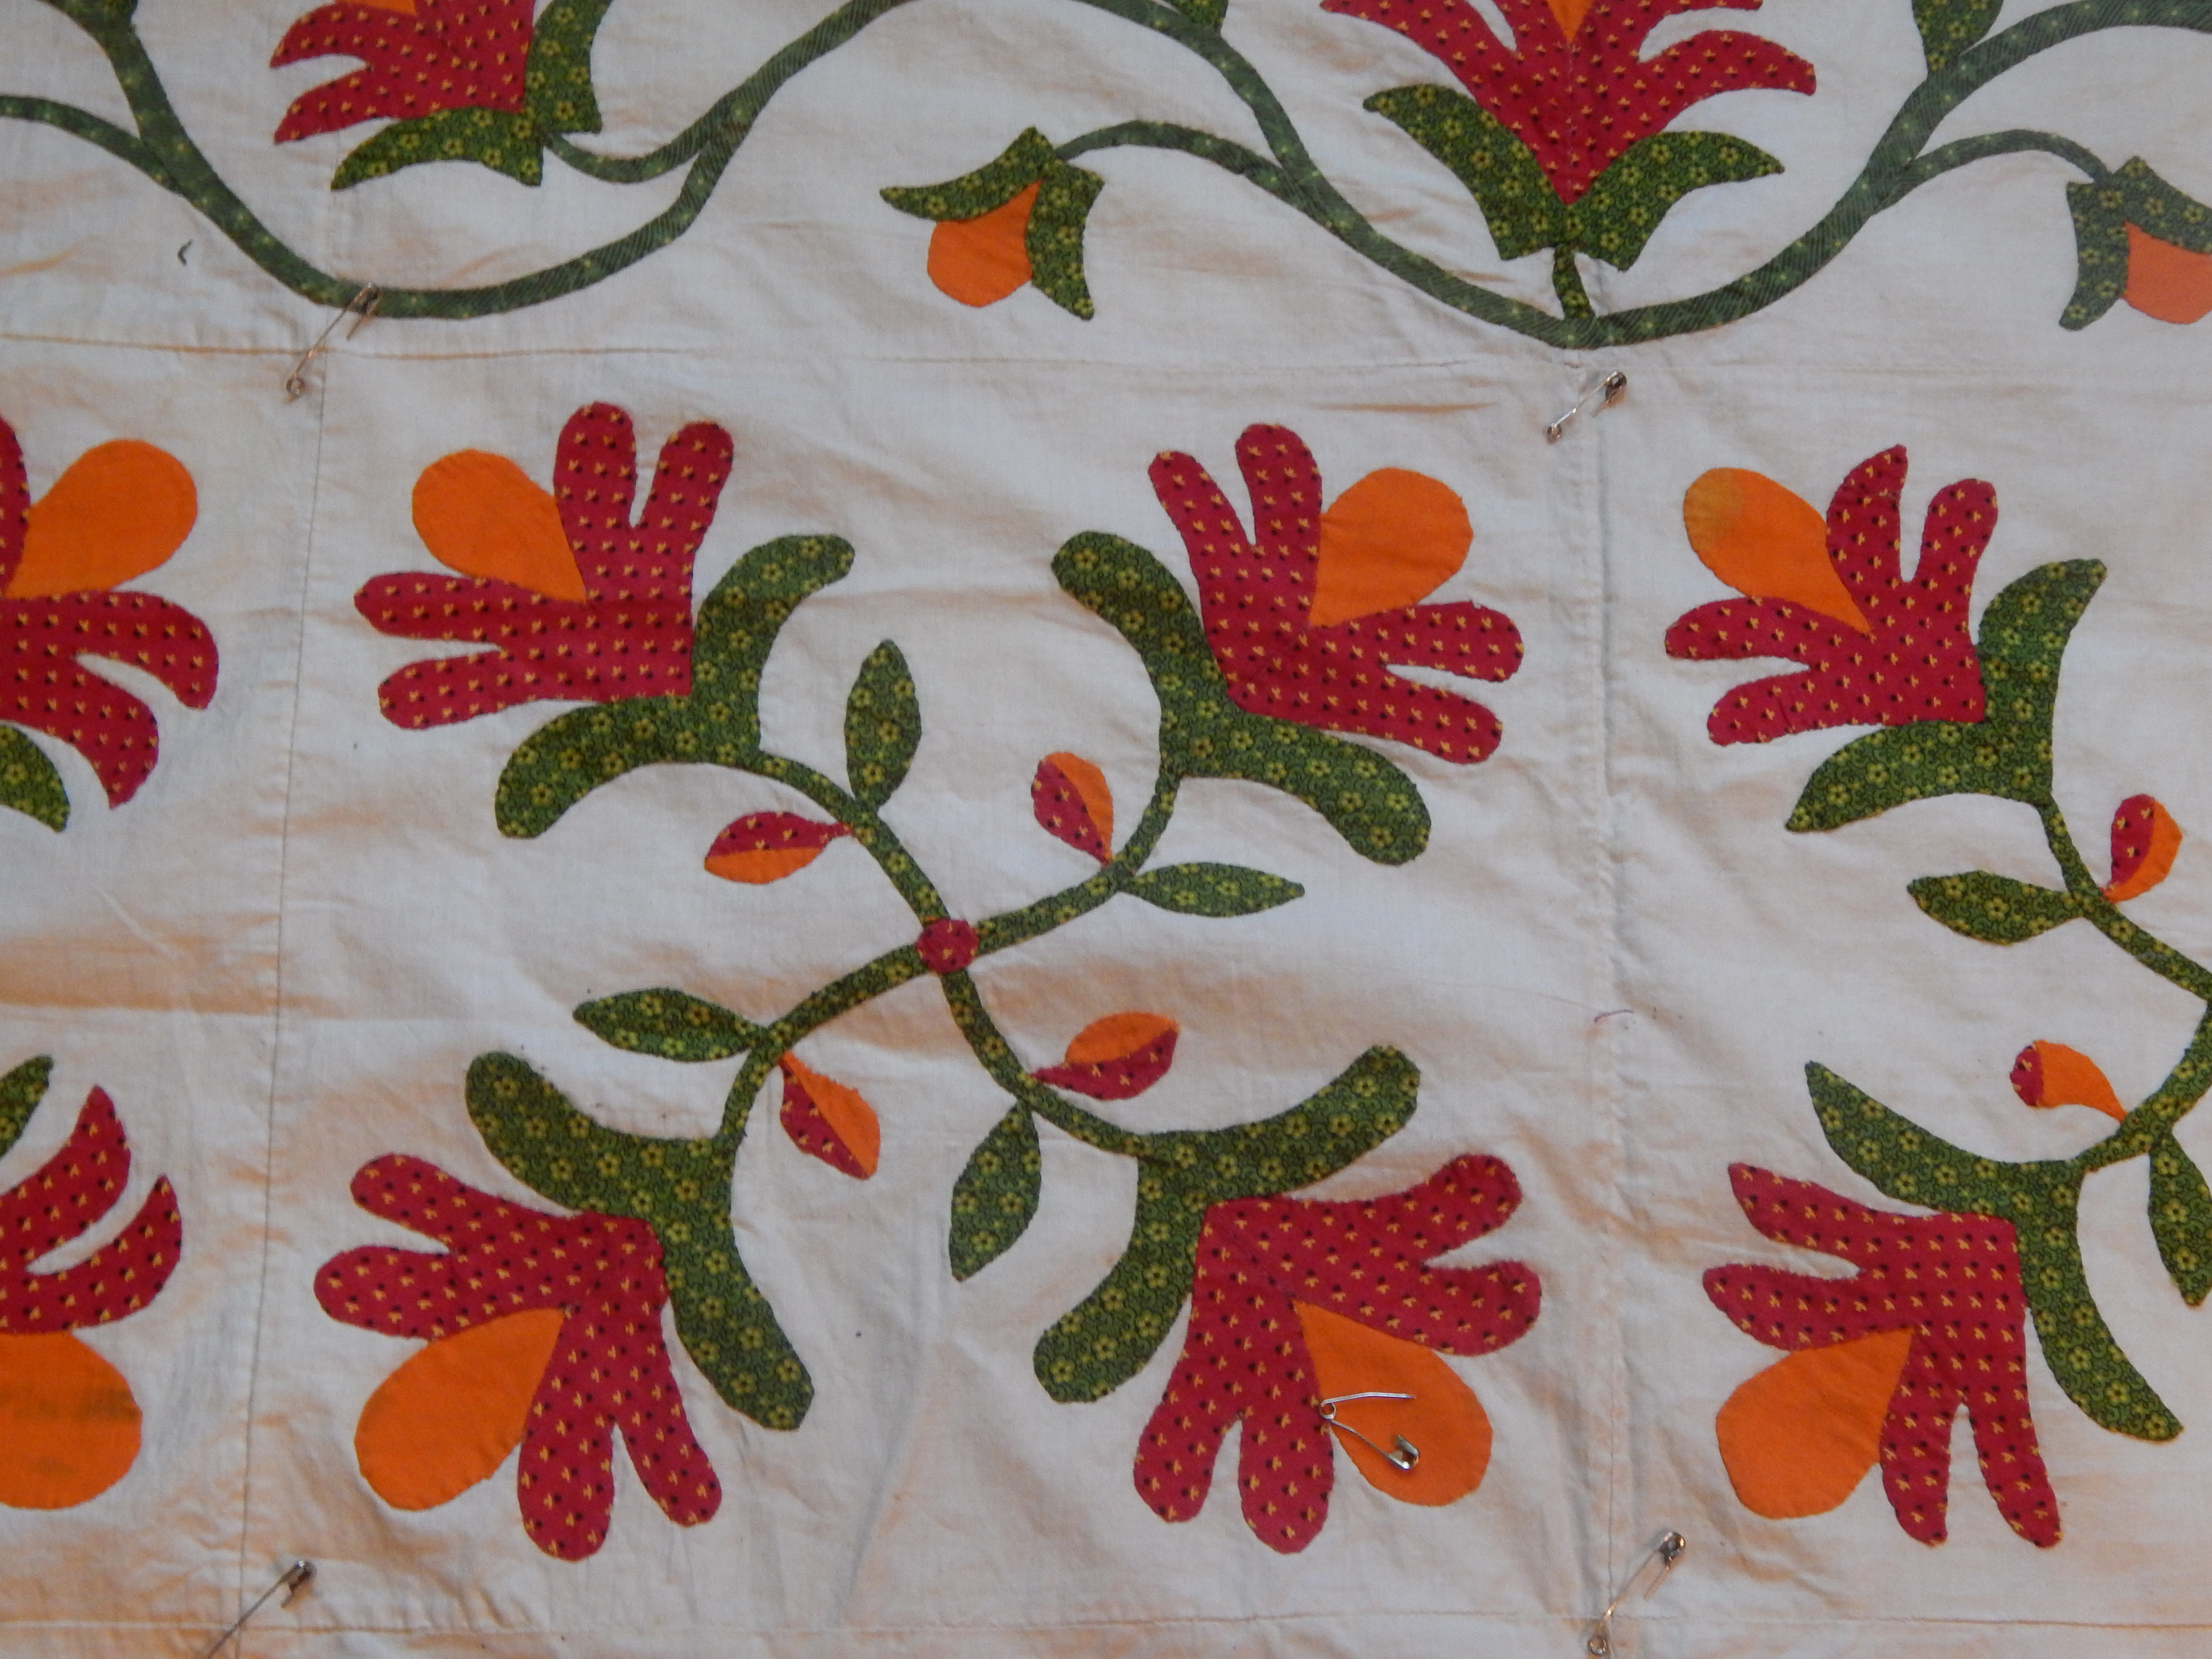 Applique designs for tablecloth - What I Don T Want Is Any Quilting That Will Detract From The Beautiful Applique I Want The Quilting To Enhance The Design Of The Top